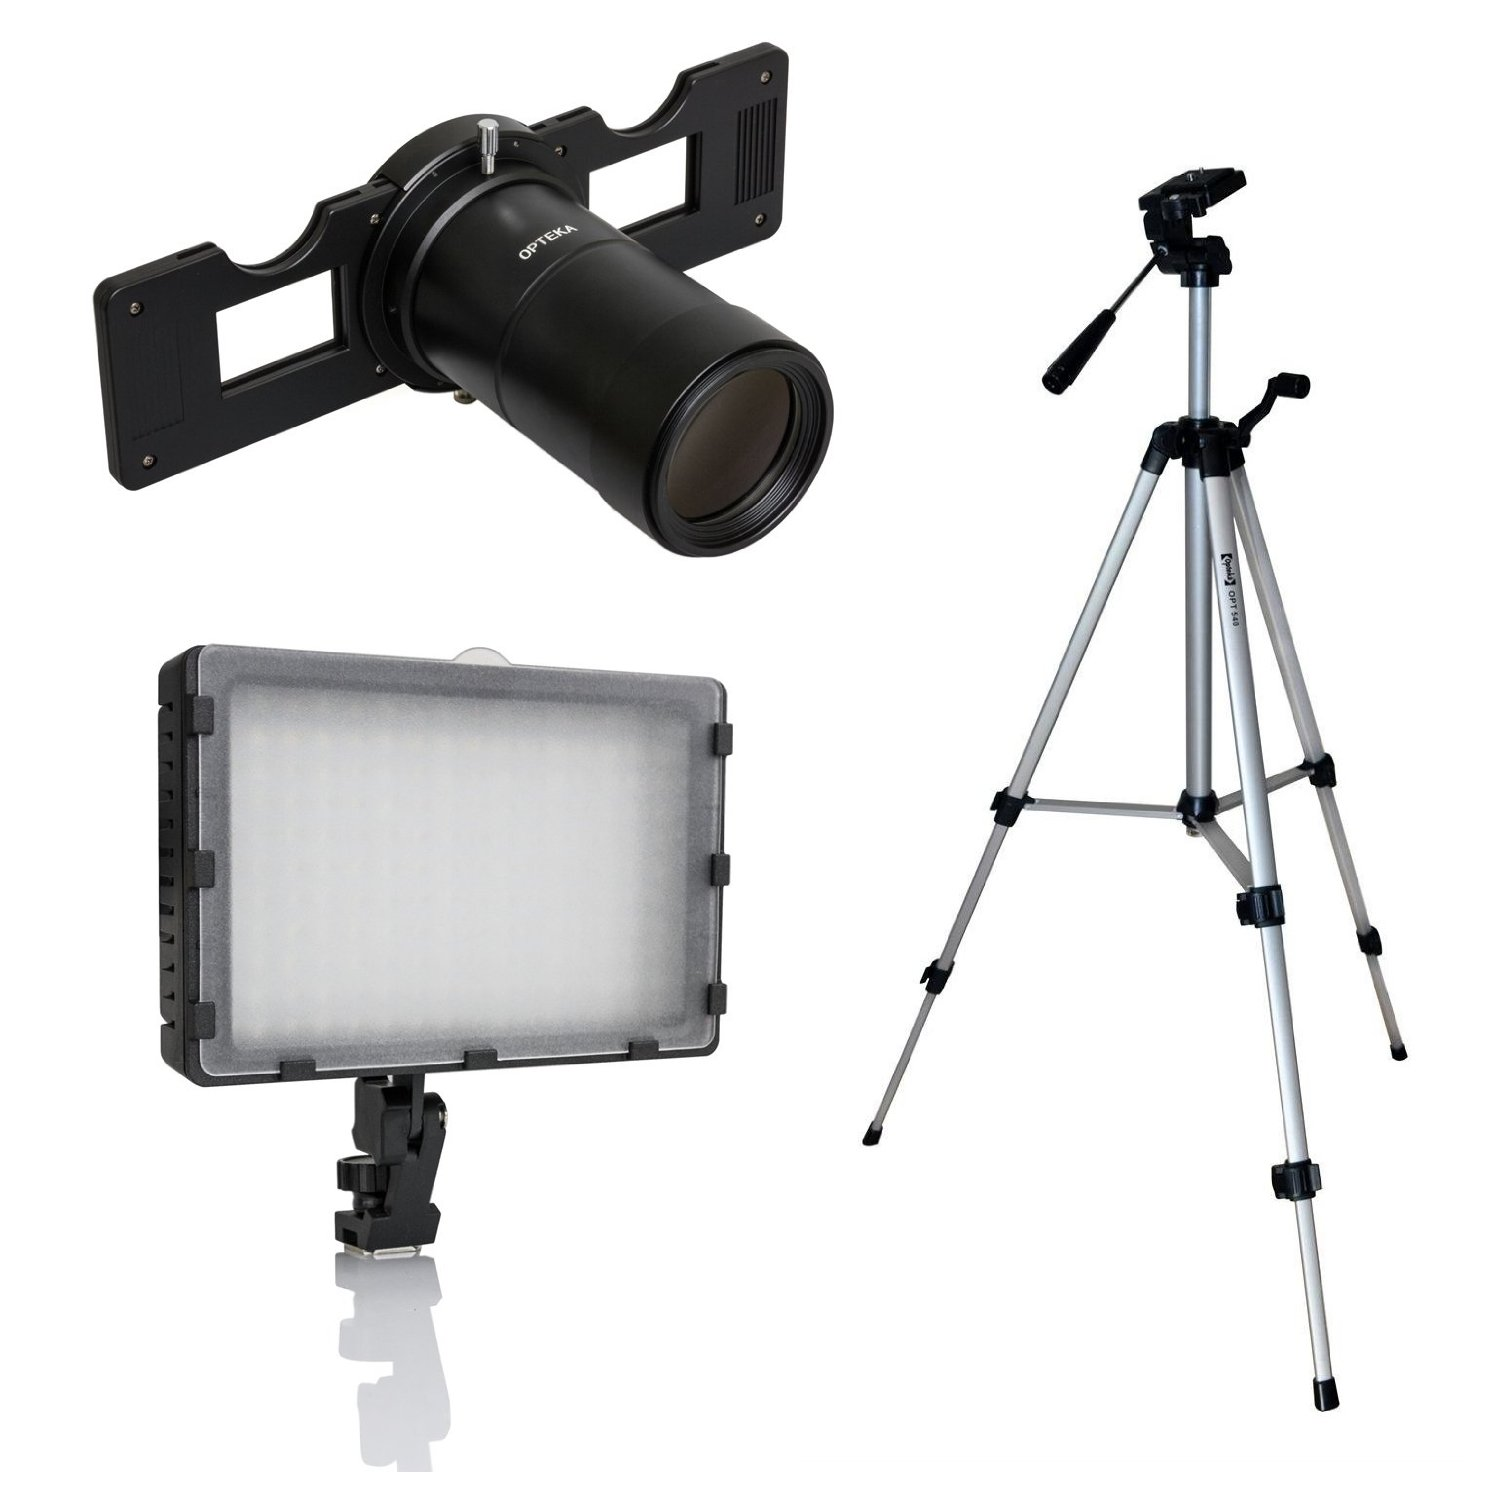 Opteka Slide Copier Studio Lighting Kit for EOS-M Mirrorless Digital Cameras